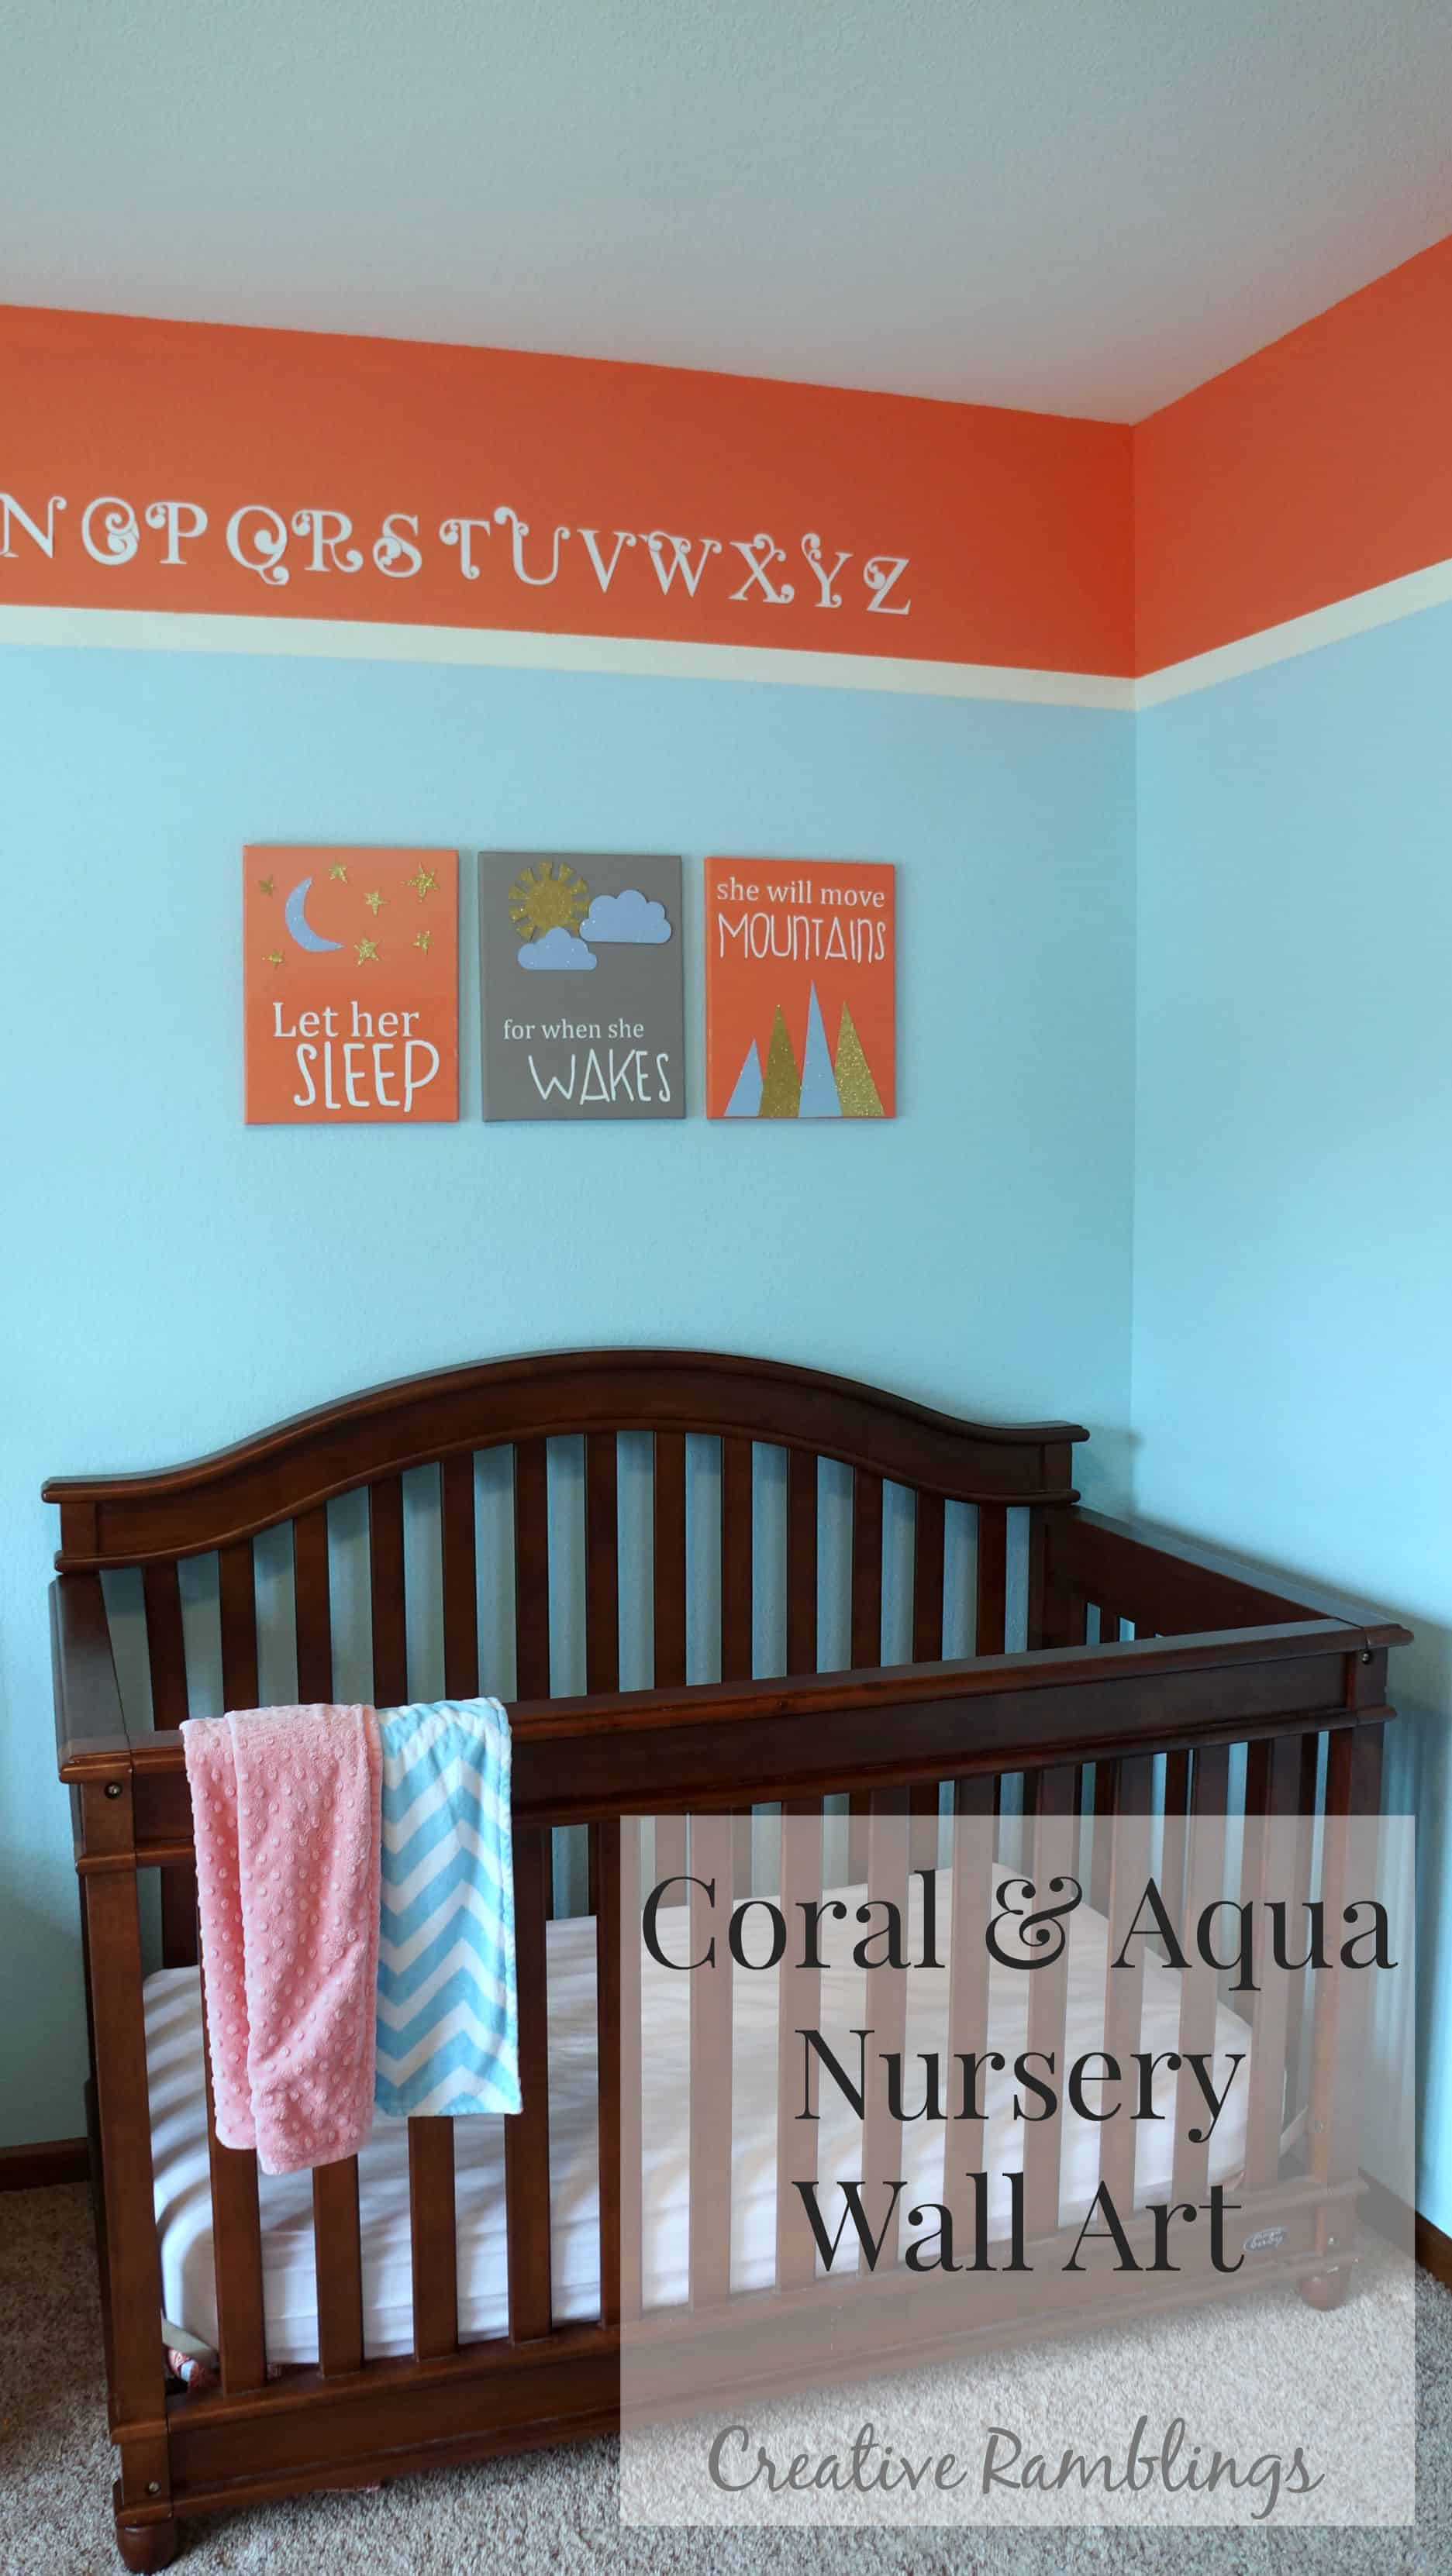 Coral and aqua canvas nursery art. Let her sleep for when she wakes she will move mountains. #Silhouetechallenge